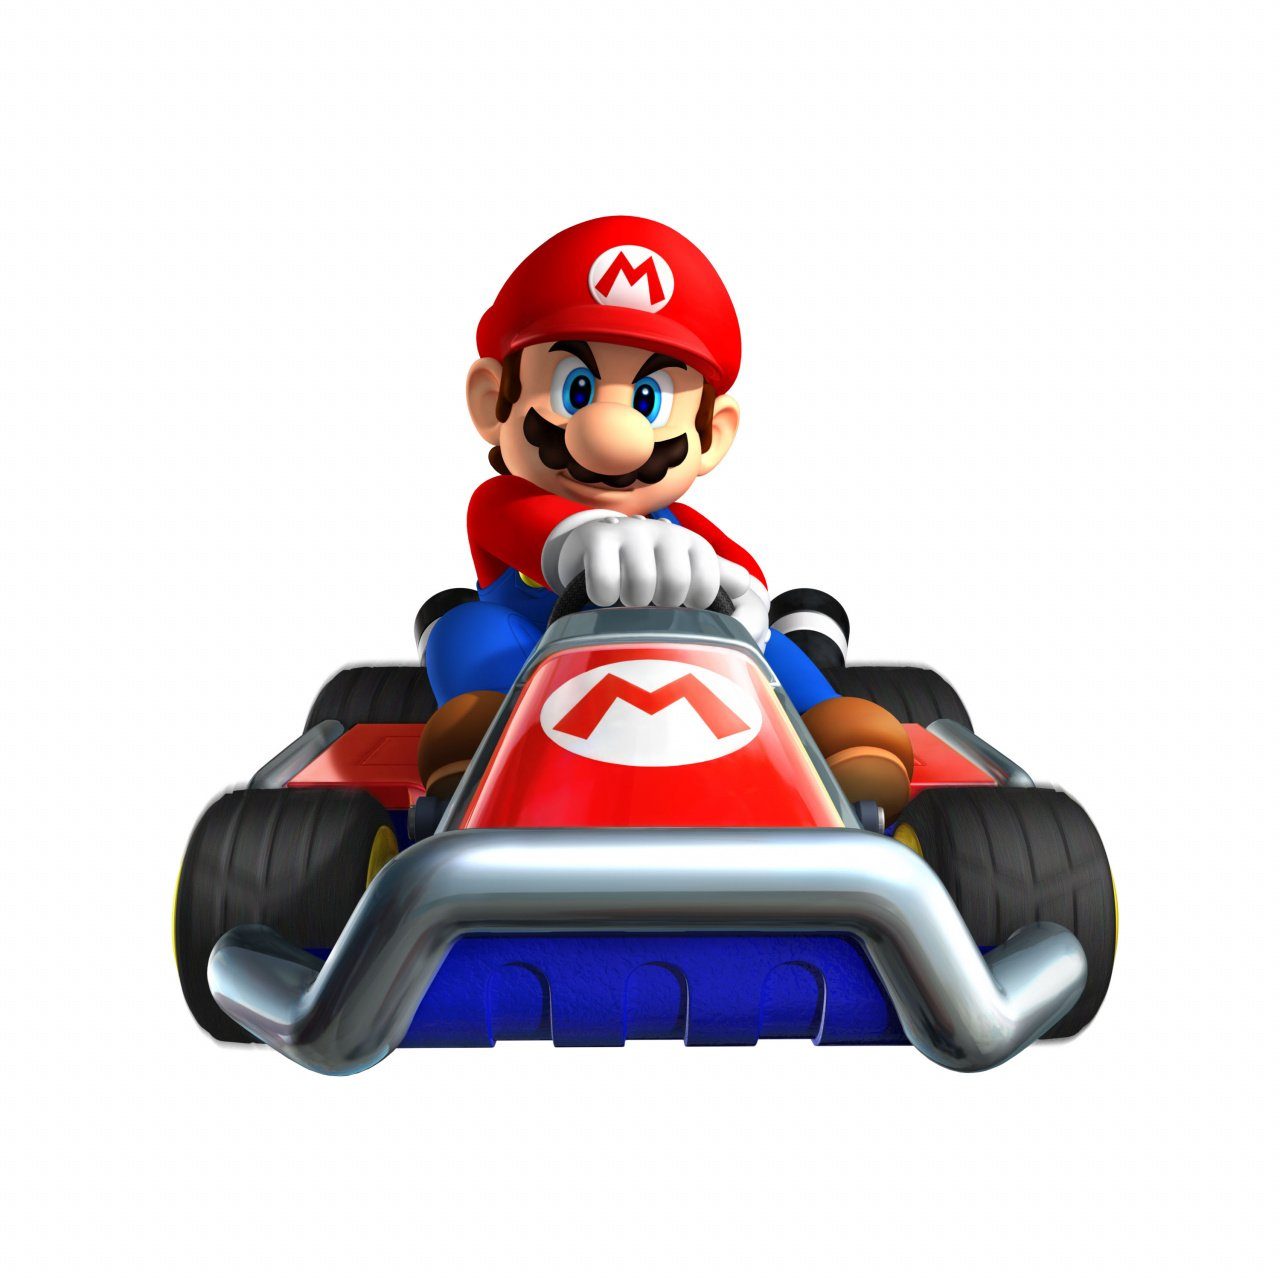 mario kart 7 art races your screen nintendo life. Black Bedroom Furniture Sets. Home Design Ideas